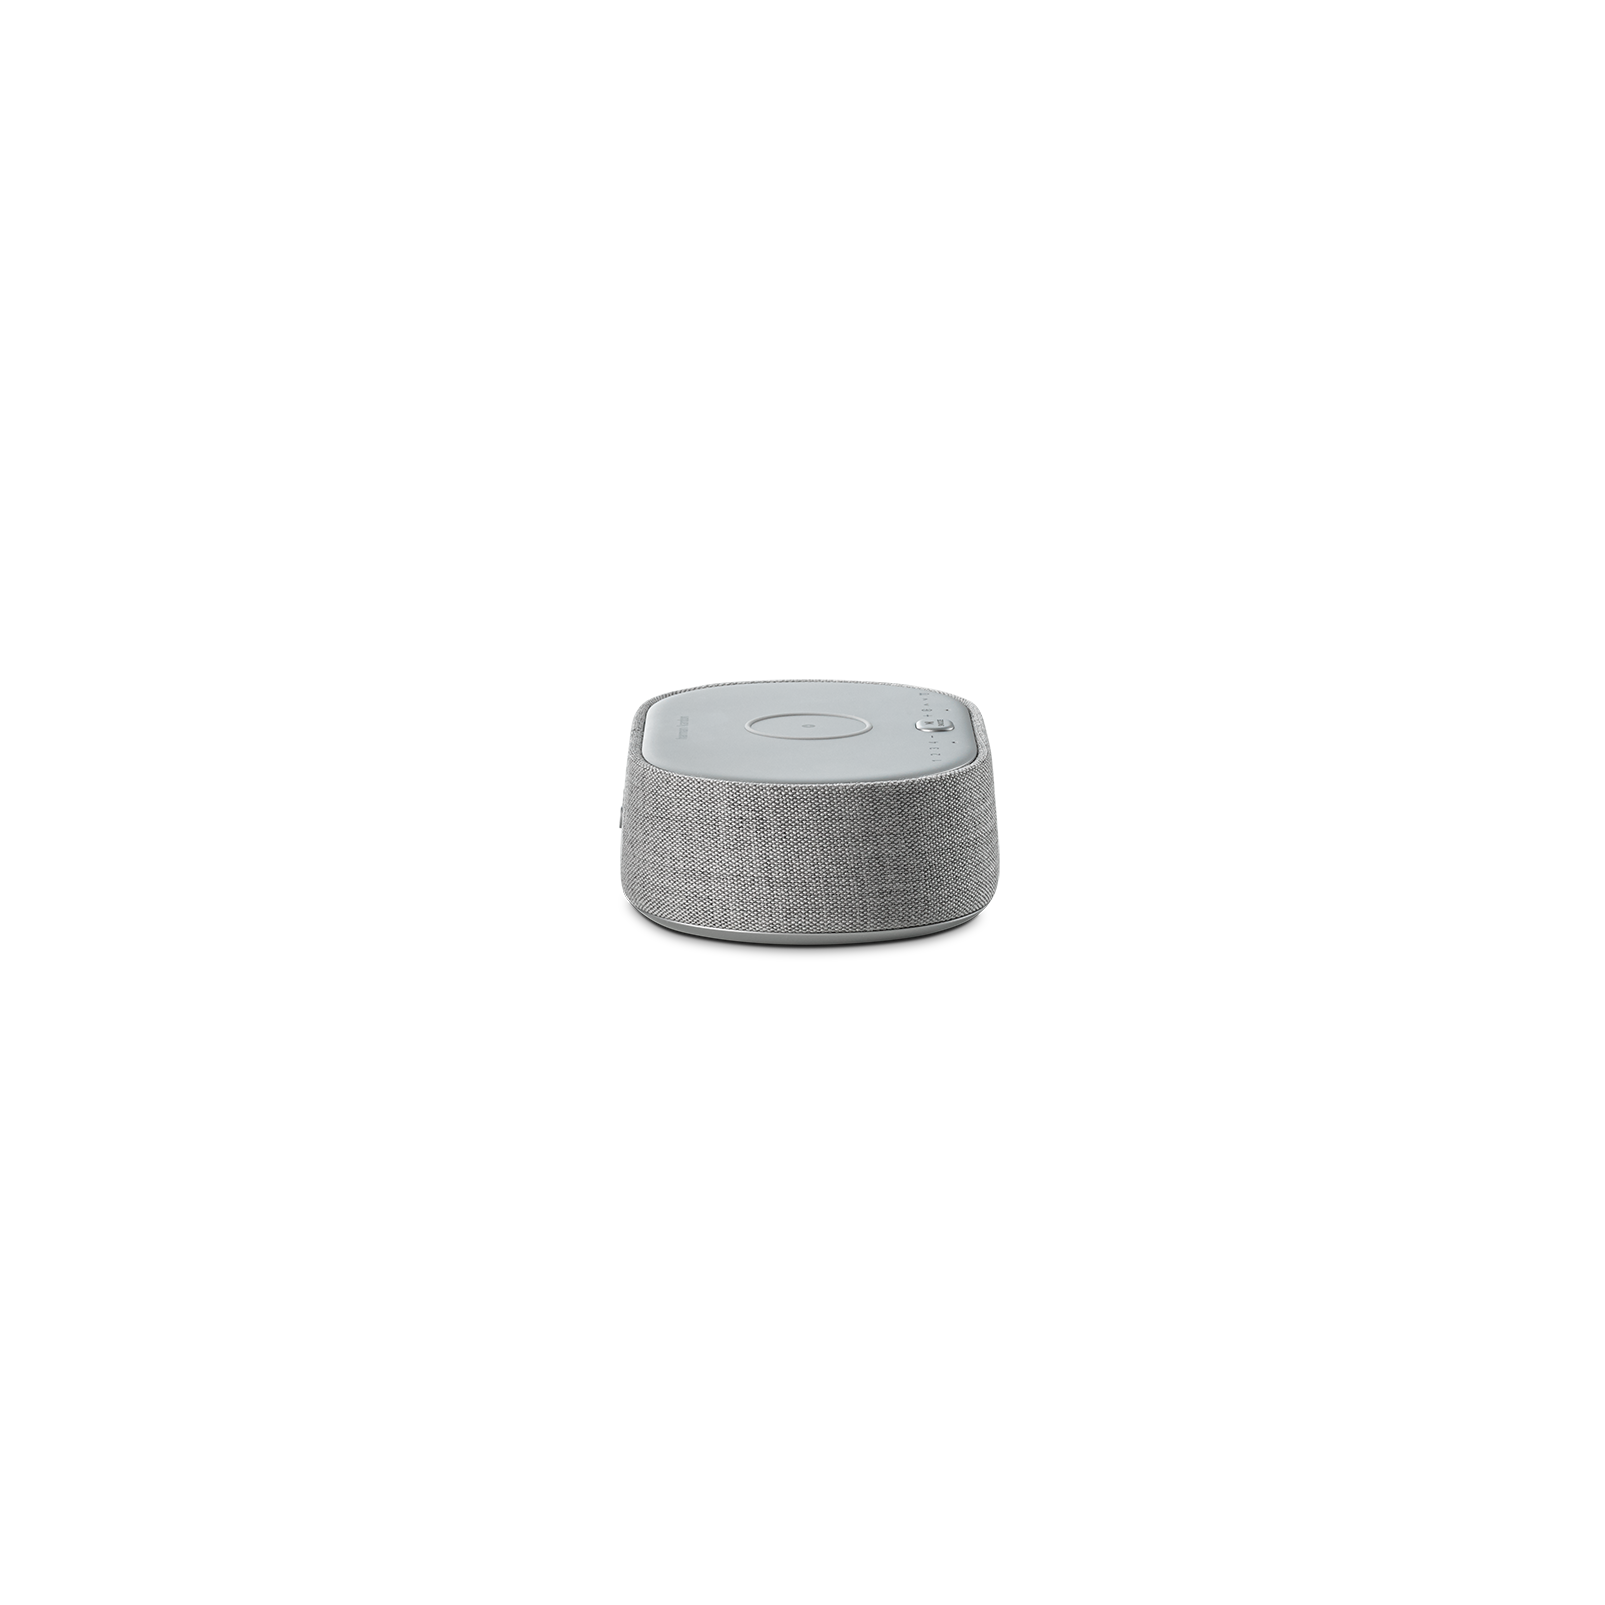 Harman Kardon Citation Oasis DAB - Grey - Voice-controlled speaker with DAB/DAB+ radio and wireless phone charging - Left